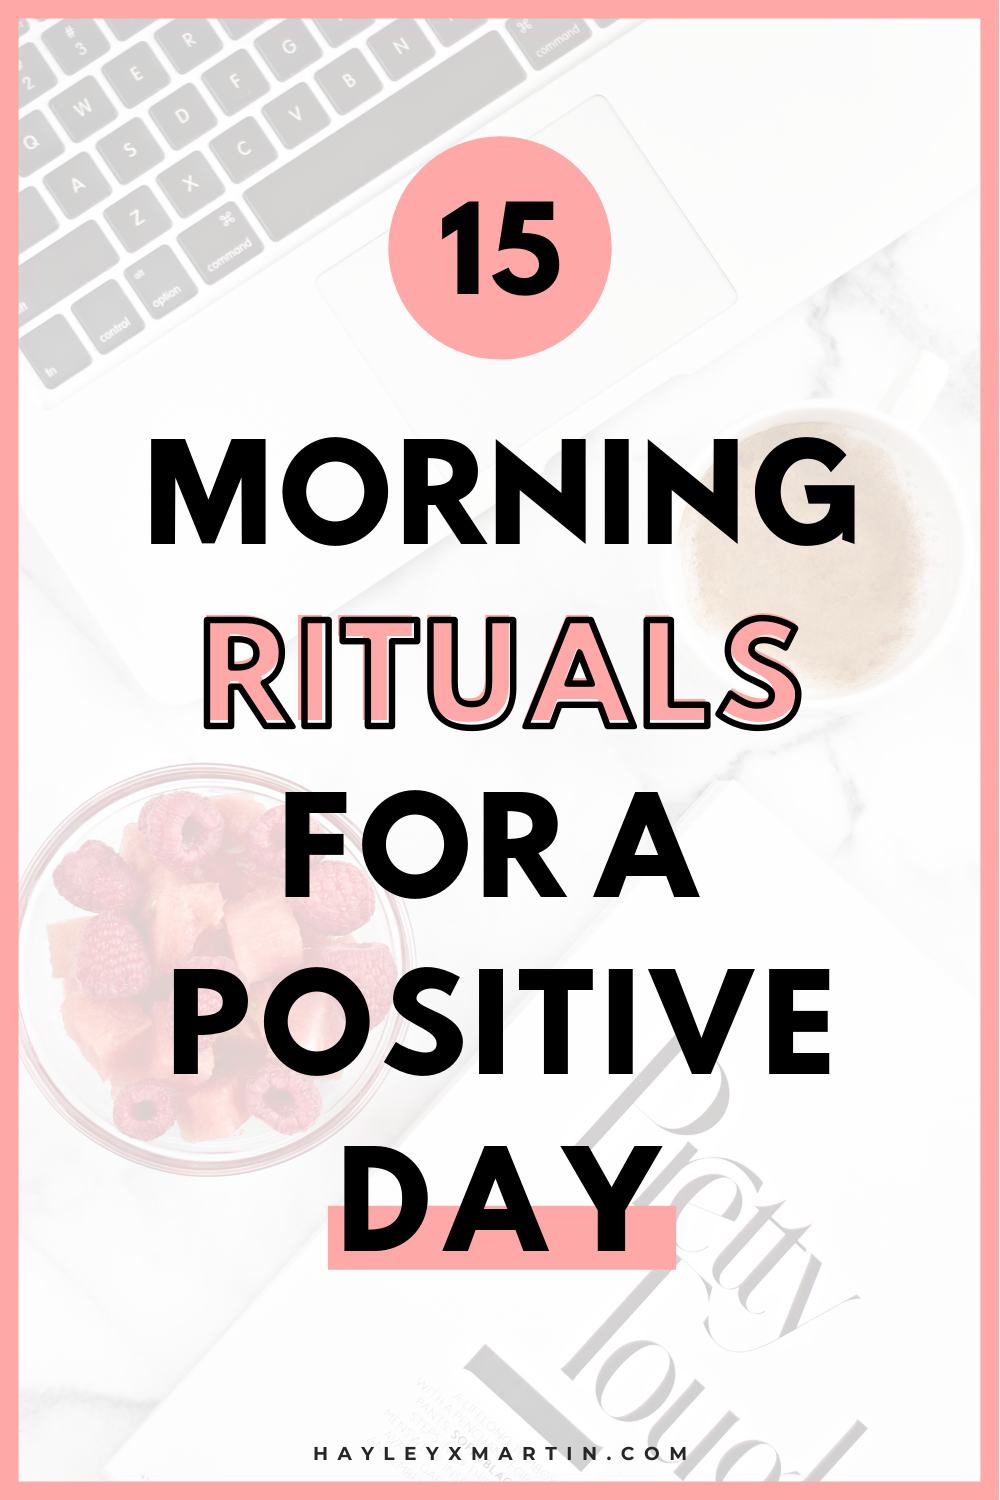 15 MORNING RITUALS FOR A POSITIVE DAY | HAYLEYXMARTIN